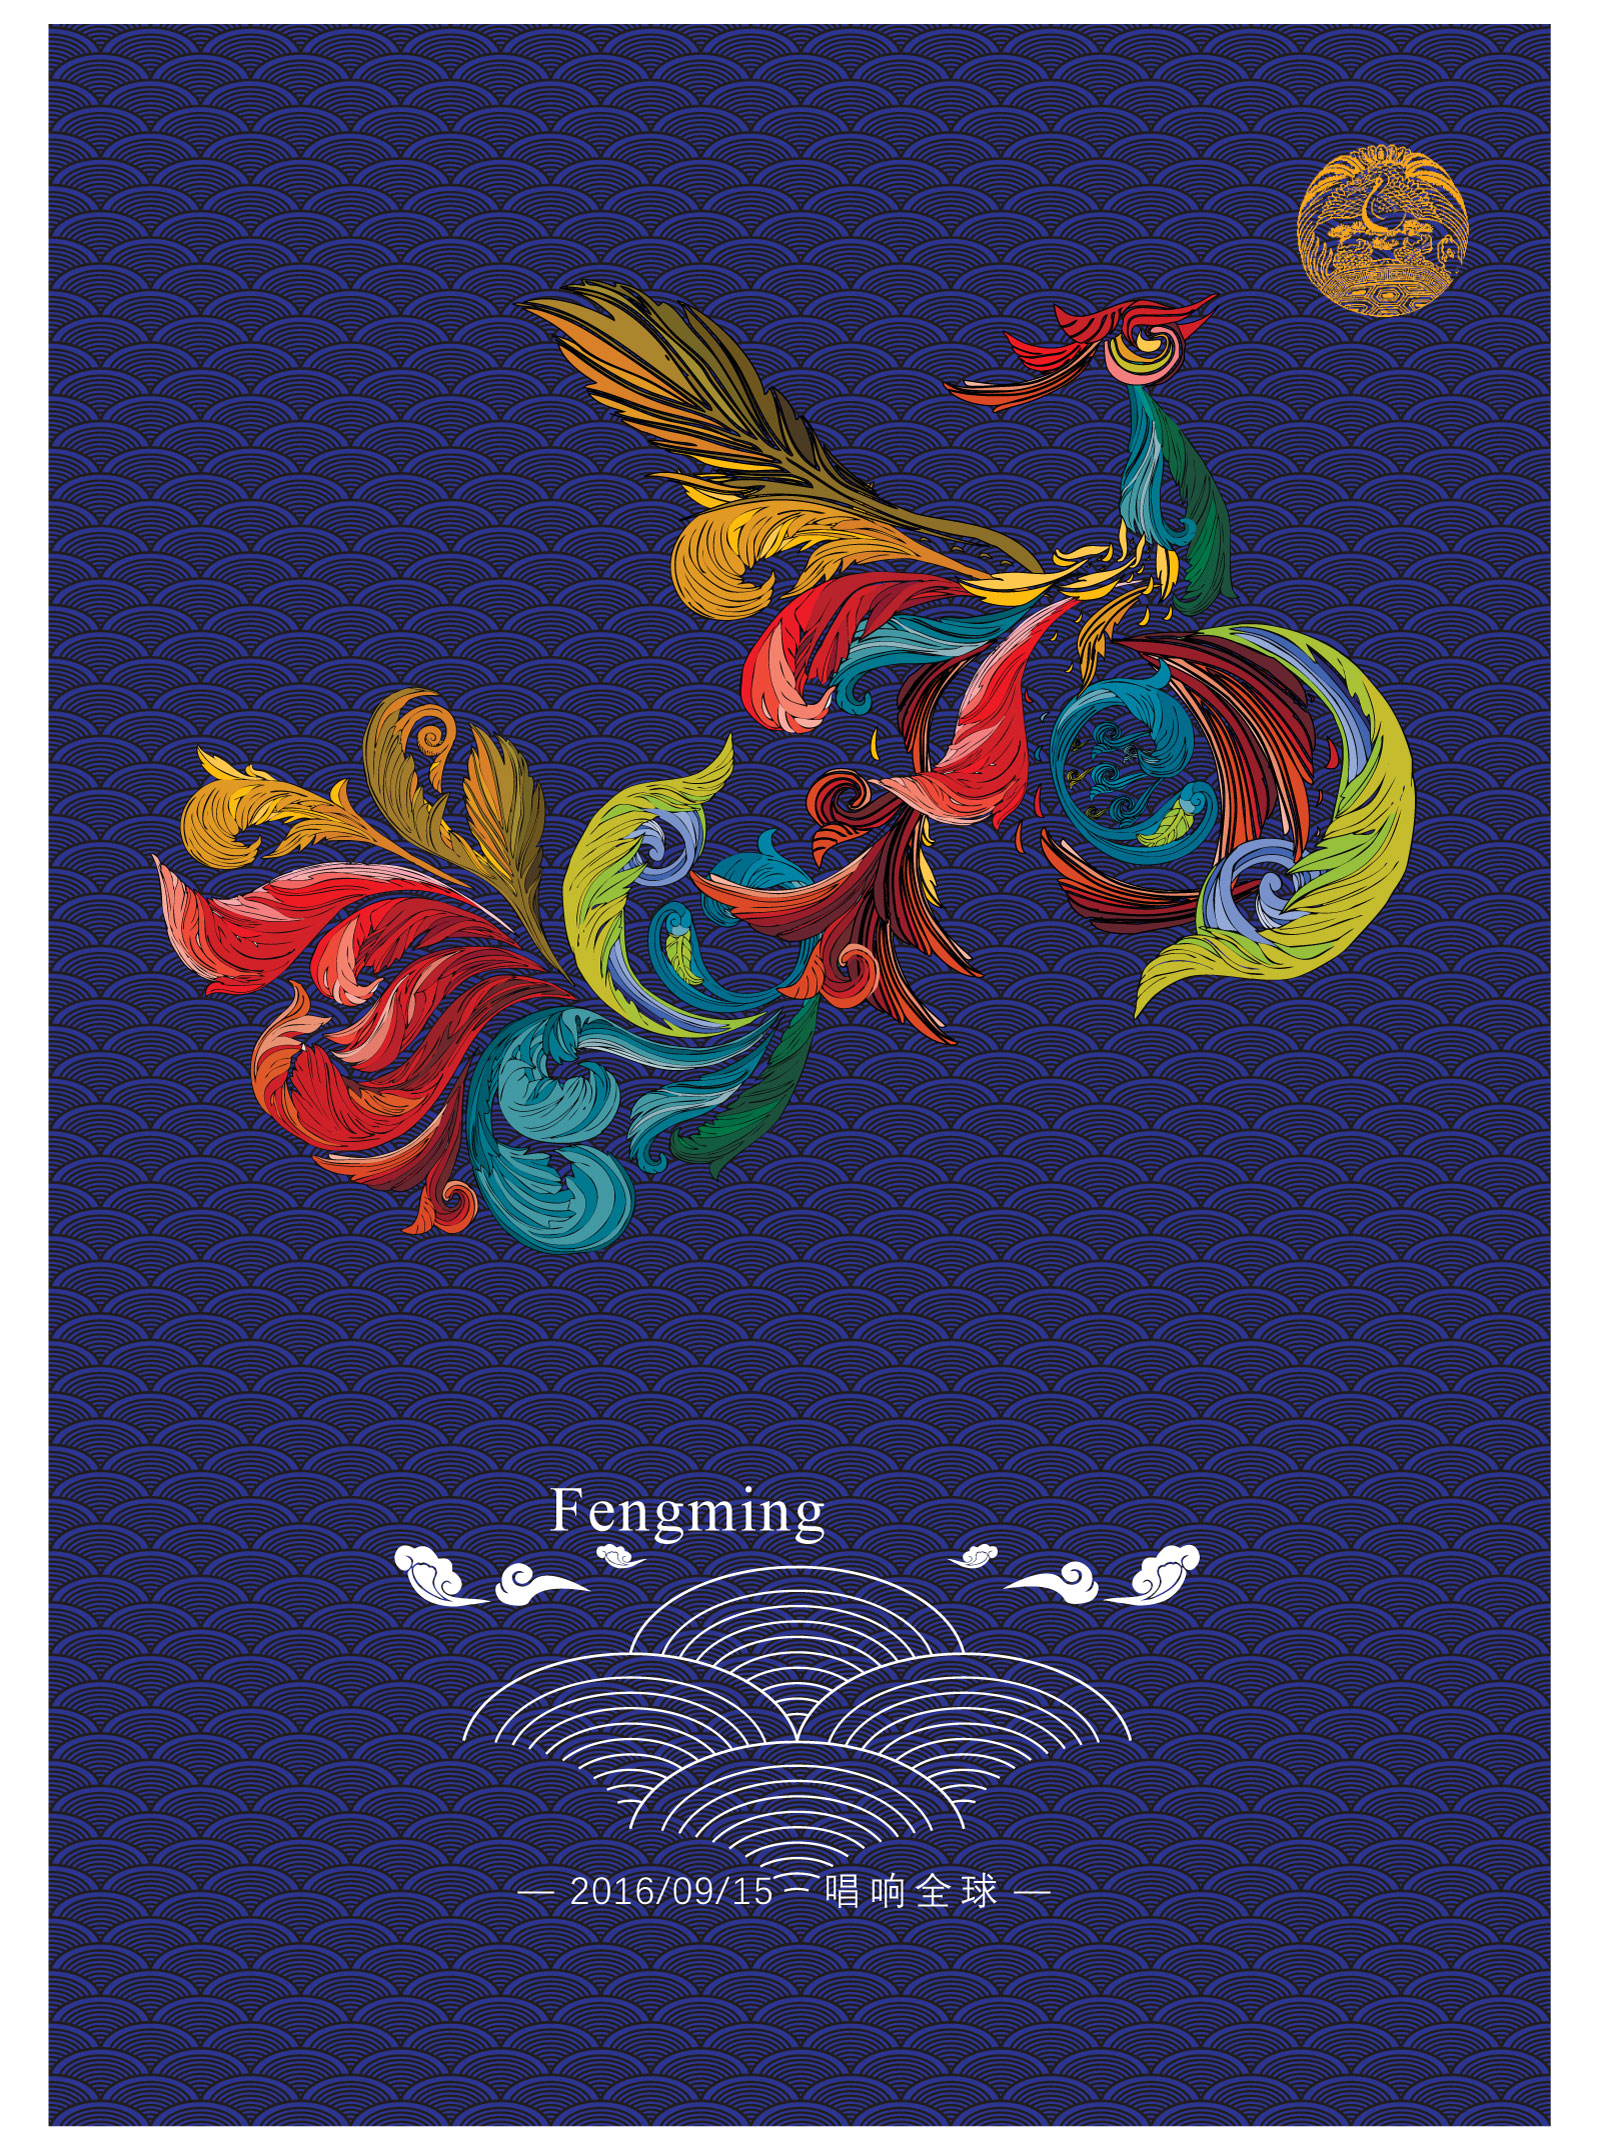 chinesefontdesign.com 2017 03 07 08 53 22 Super gorgeous Chinese phoenix patterns China Illustrations Vectors AI ESP phoenix